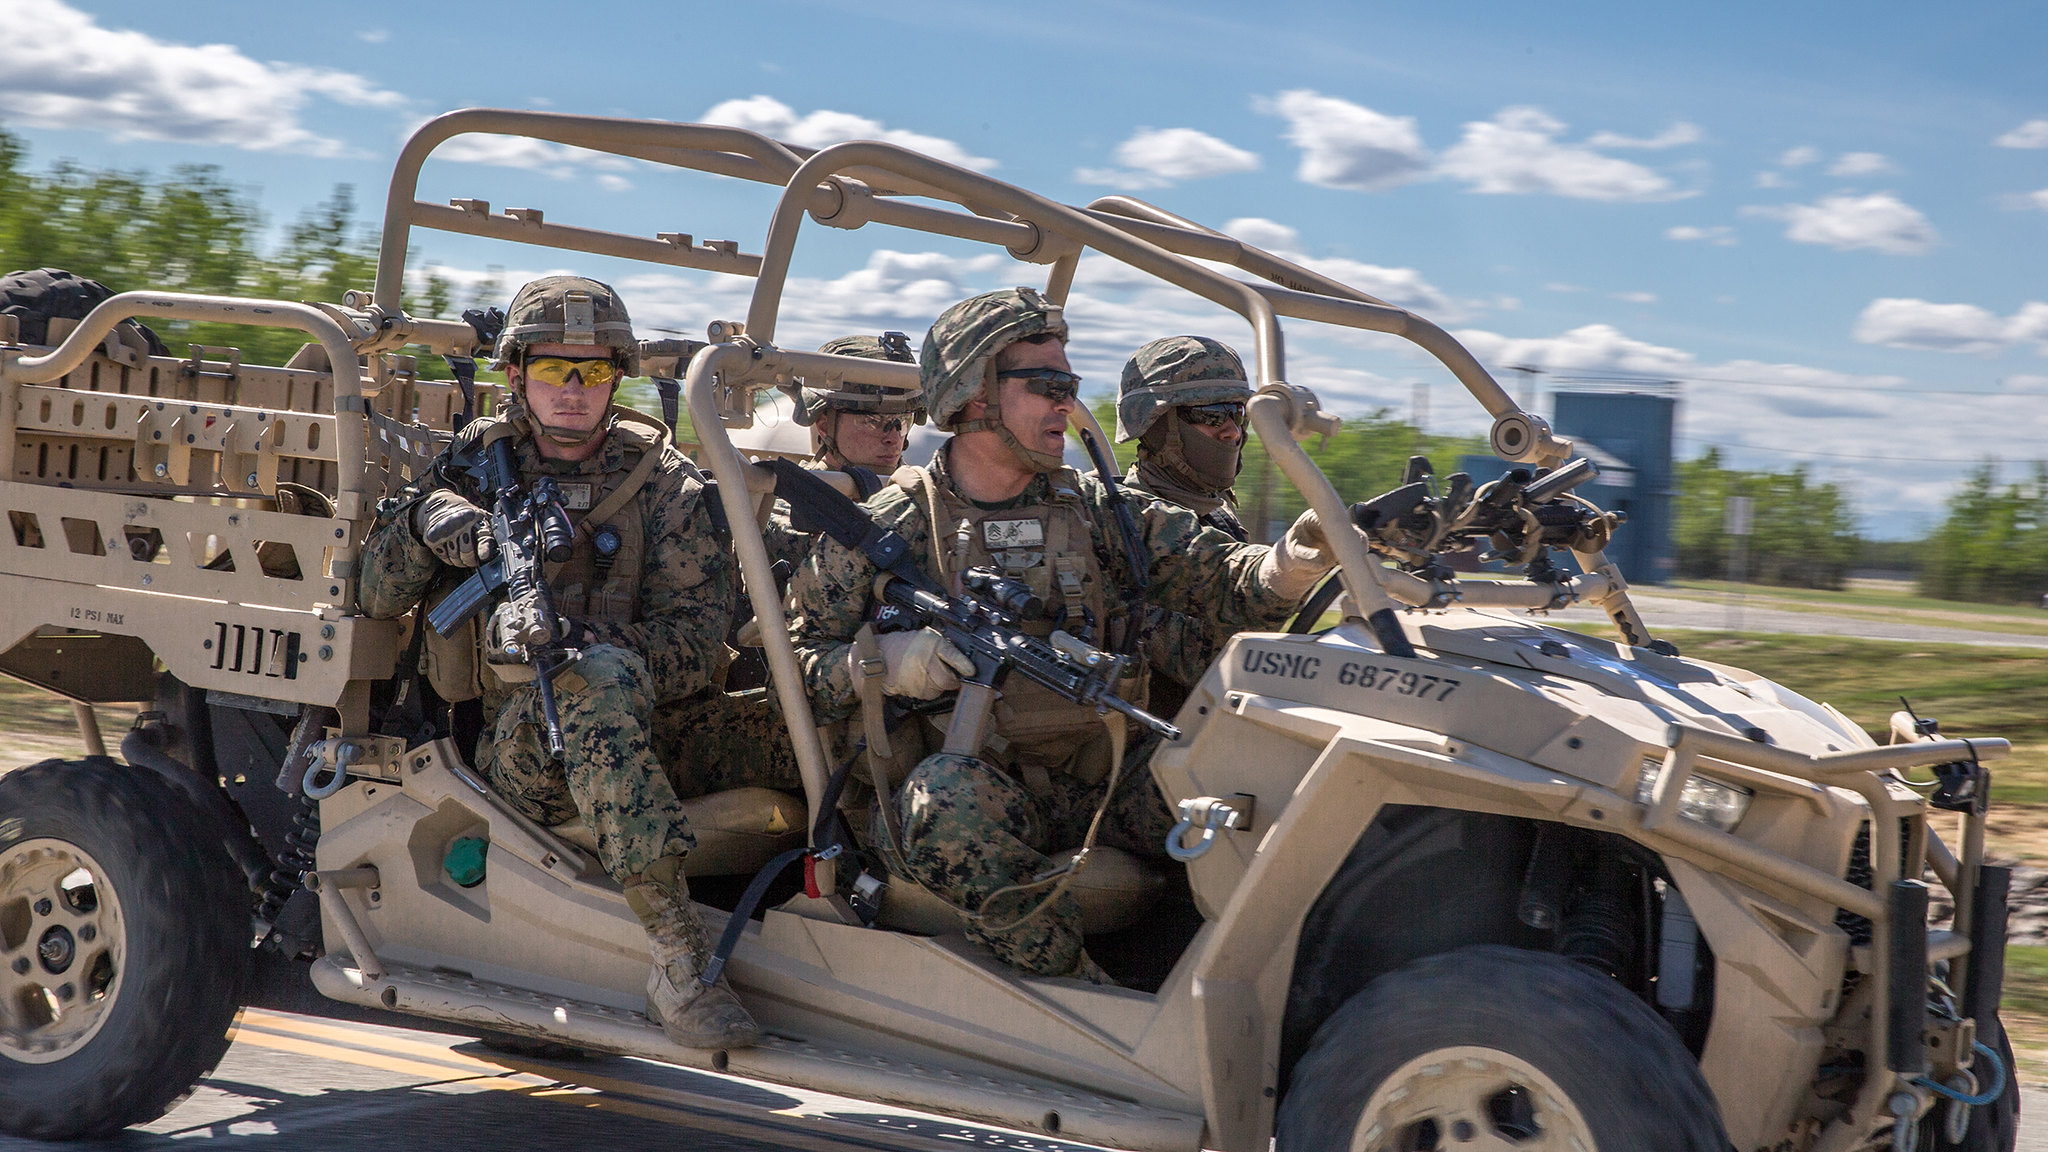 Staff Sgt. Juan Morales, front right, conducts a notional raid on a Polaris MRZR 4 vehicle on May 22, 2019, during exercise Northern Edge at Fort Greely, Alaska. (Cpl. Rhita Daniel/Marine Corps)